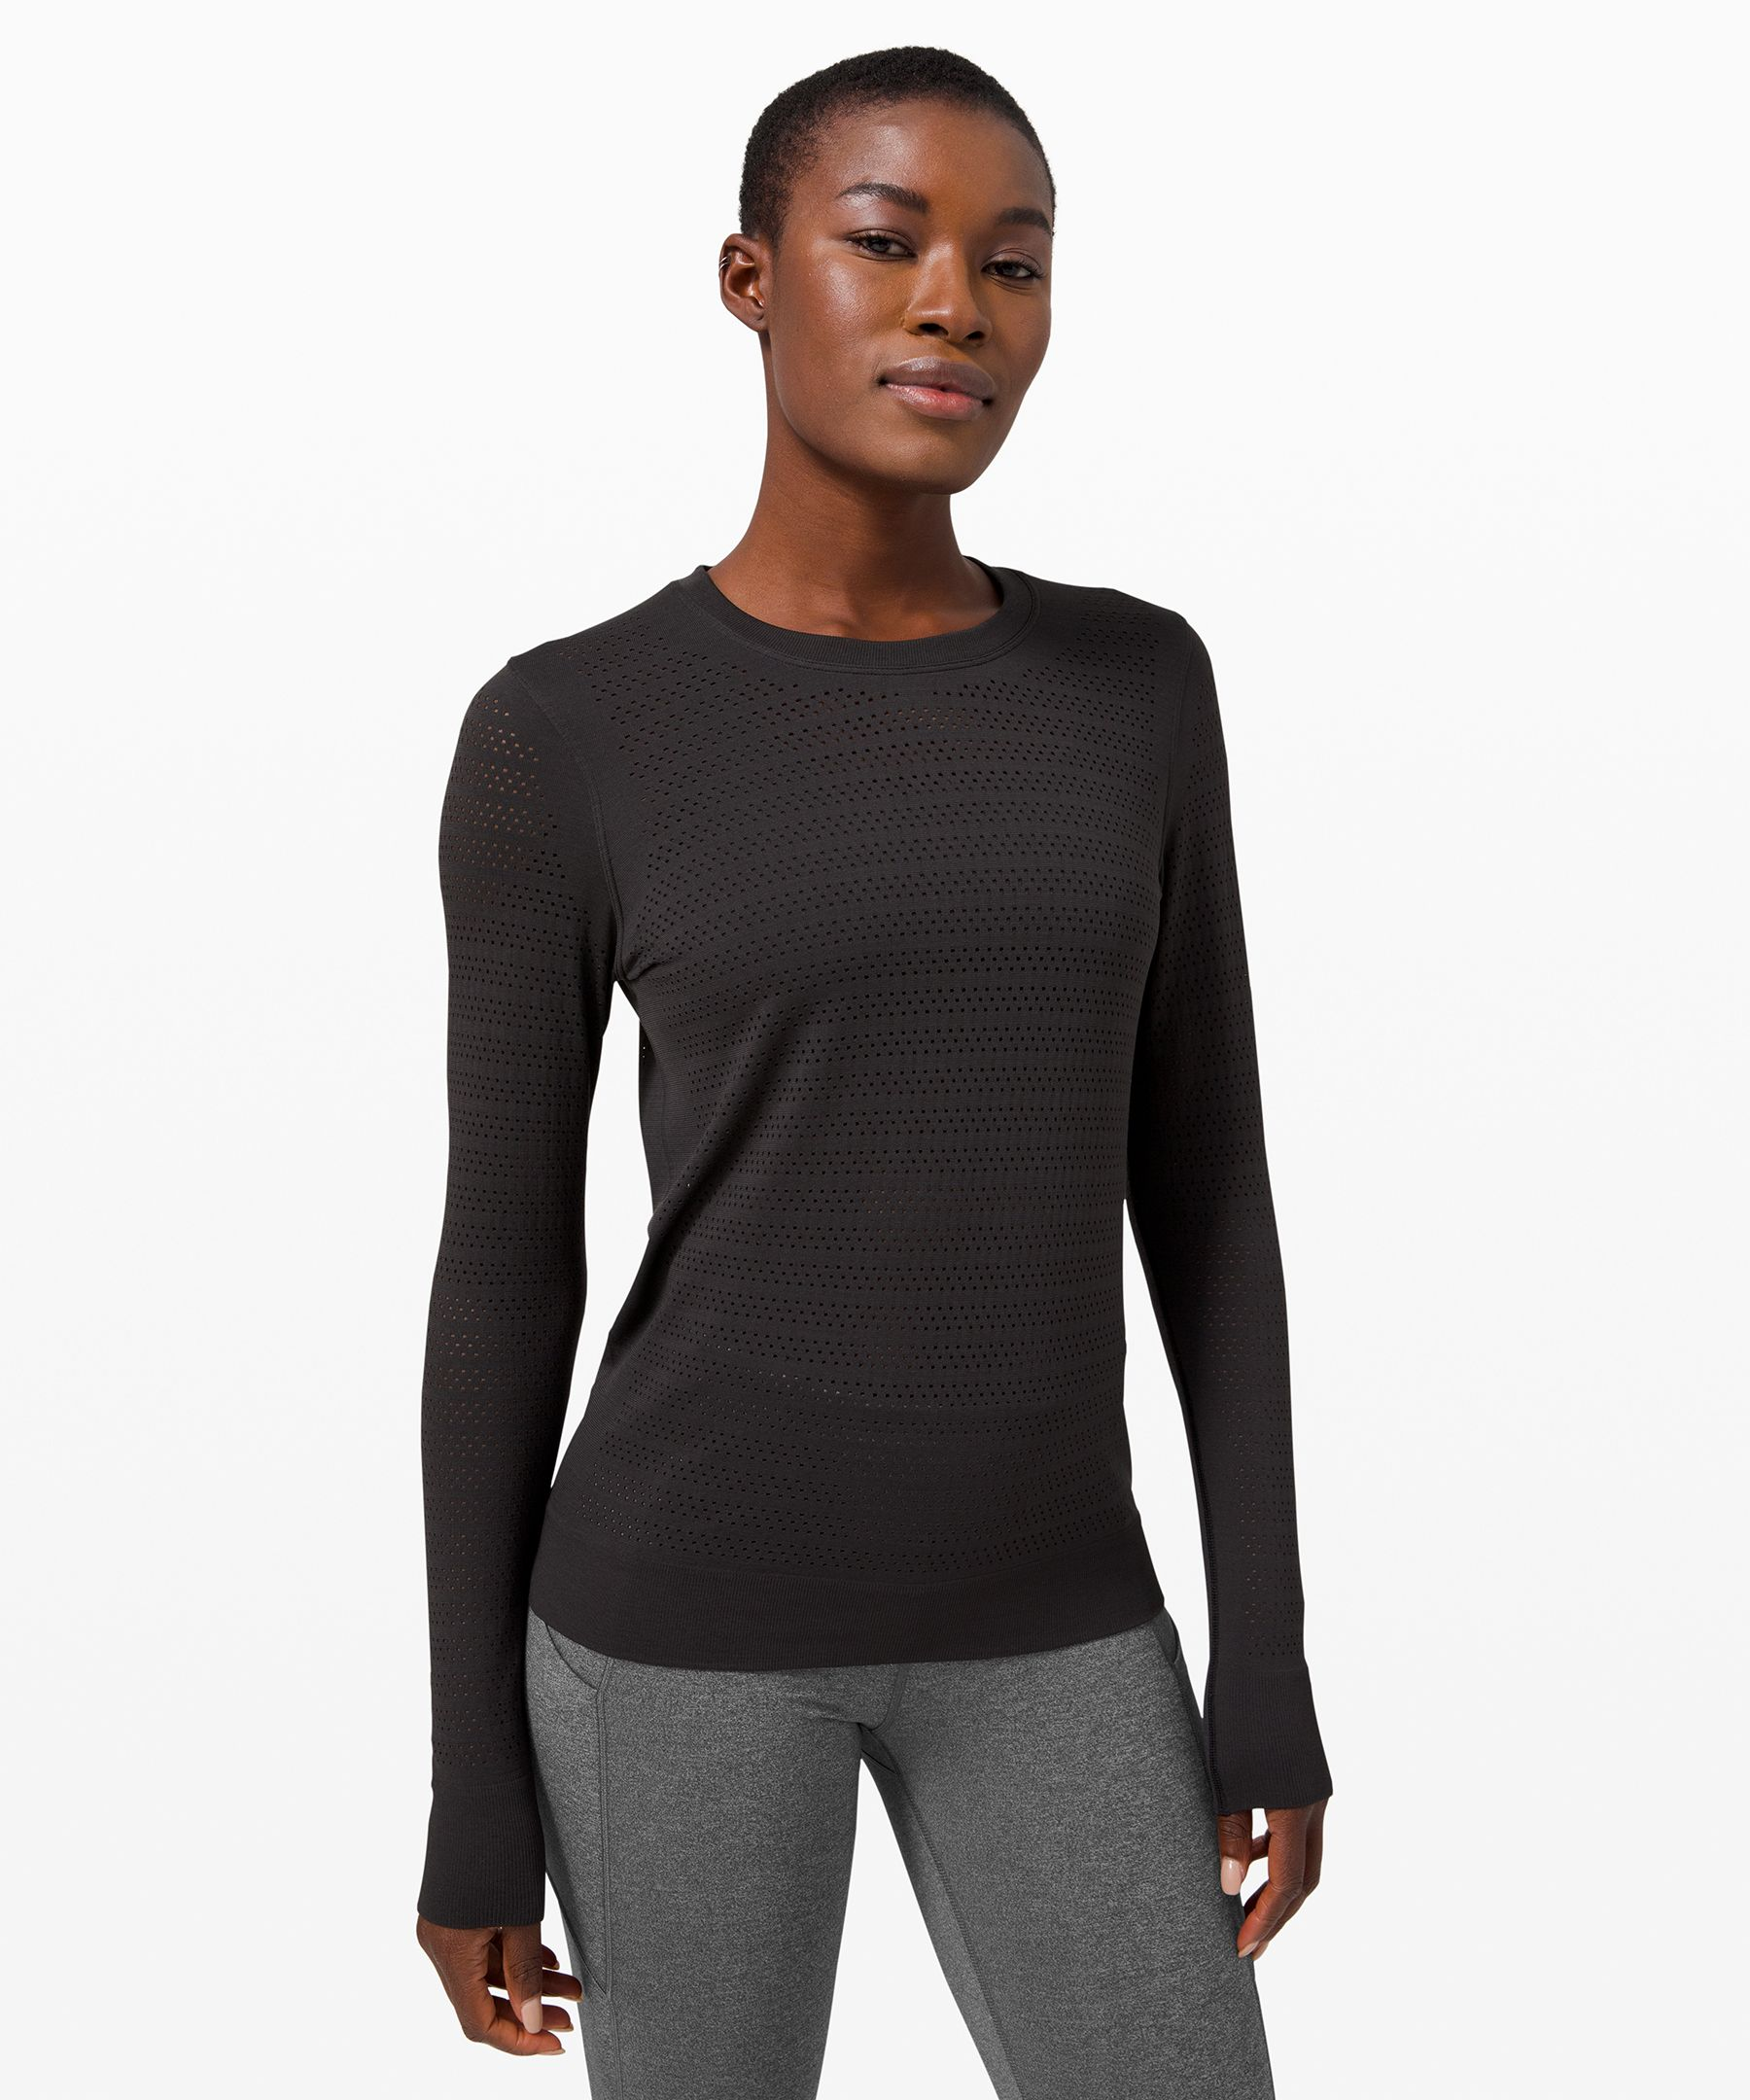 From long runs to circuit  reps, catch your cool in this  seamless, anti-stink long  sleeve. Open-hole ventilation  allows for plenty of airflow  when your workout heats up.